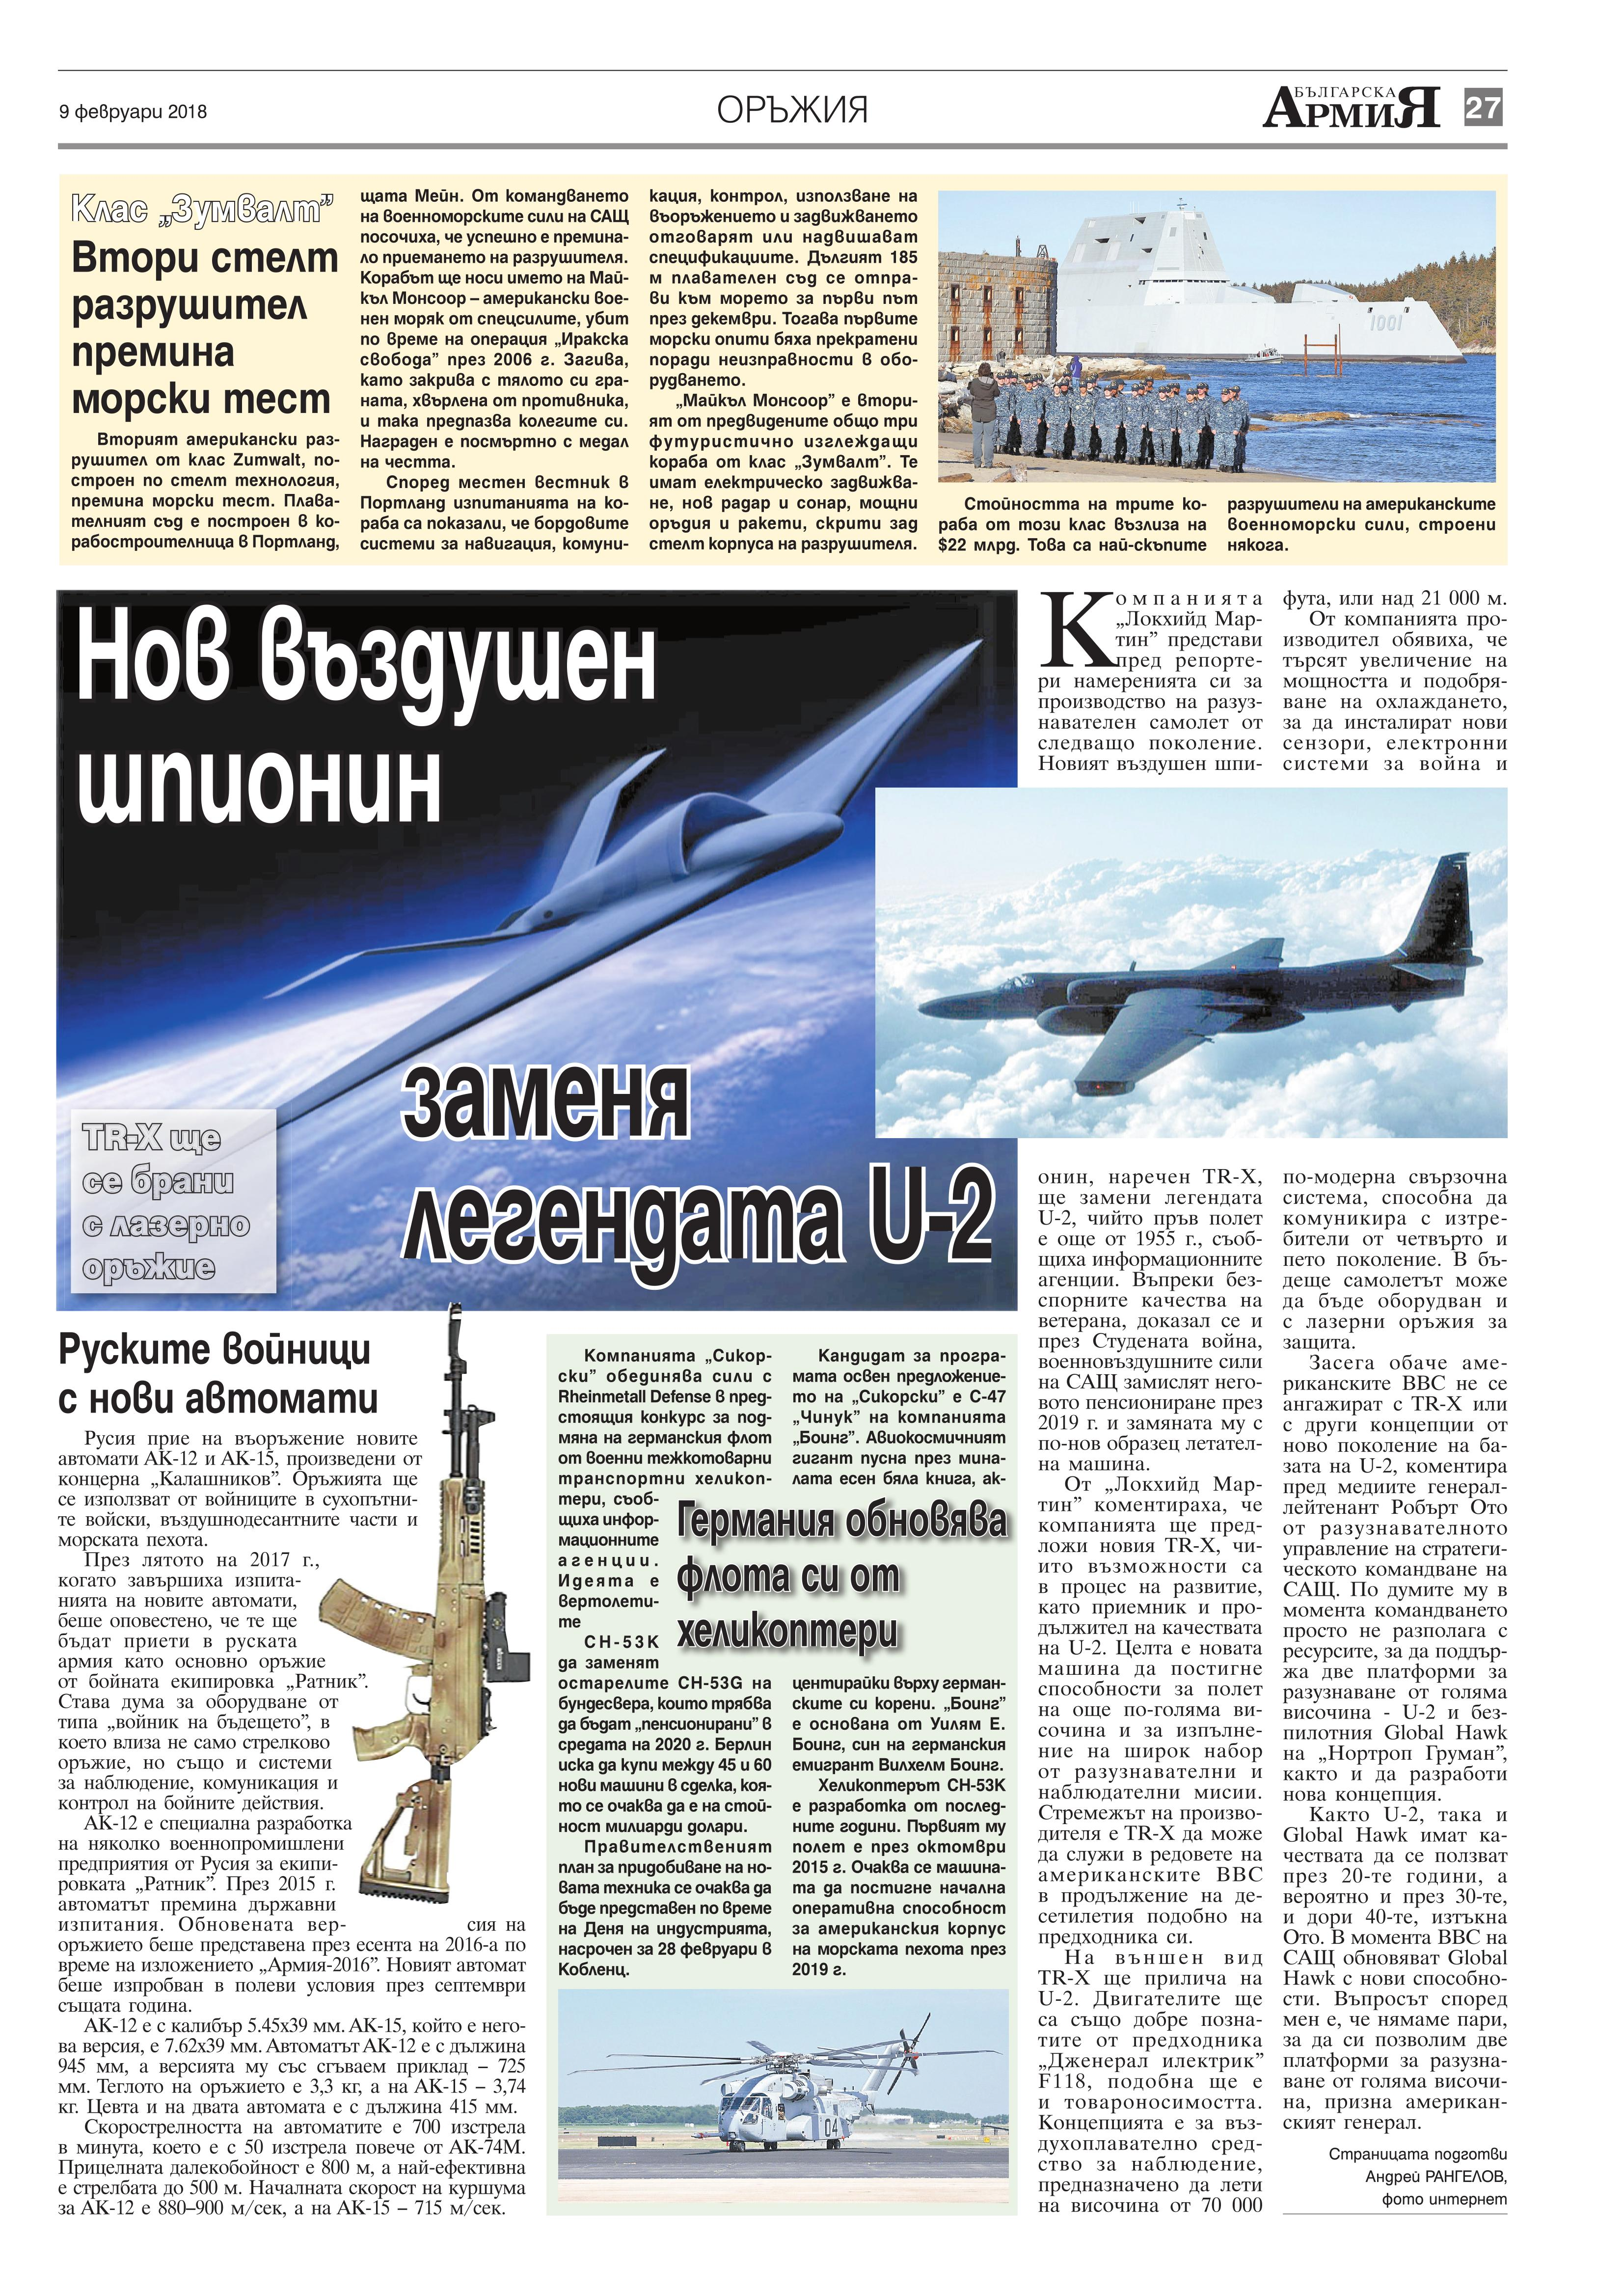 http://armymedia.bg/wp-content/uploads/2015/06/27.page1_-34.jpg